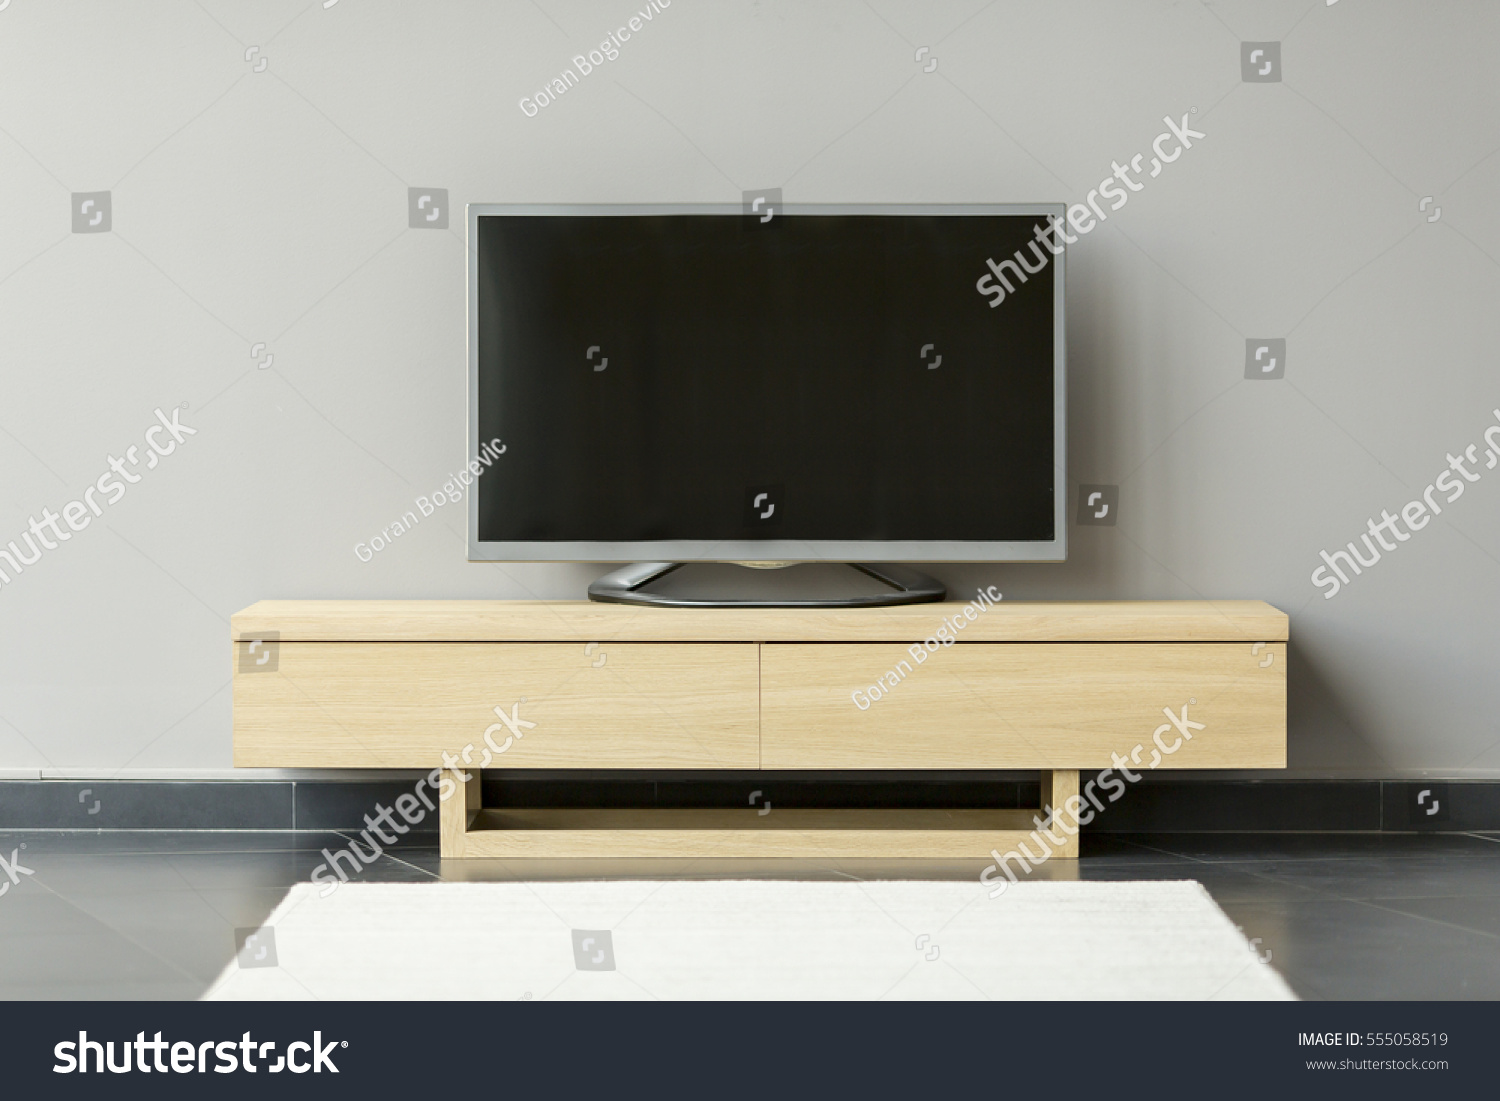 Flattv Standing On Commode Room Stock Photo 555058519 Shutterstock # Commode Tv But